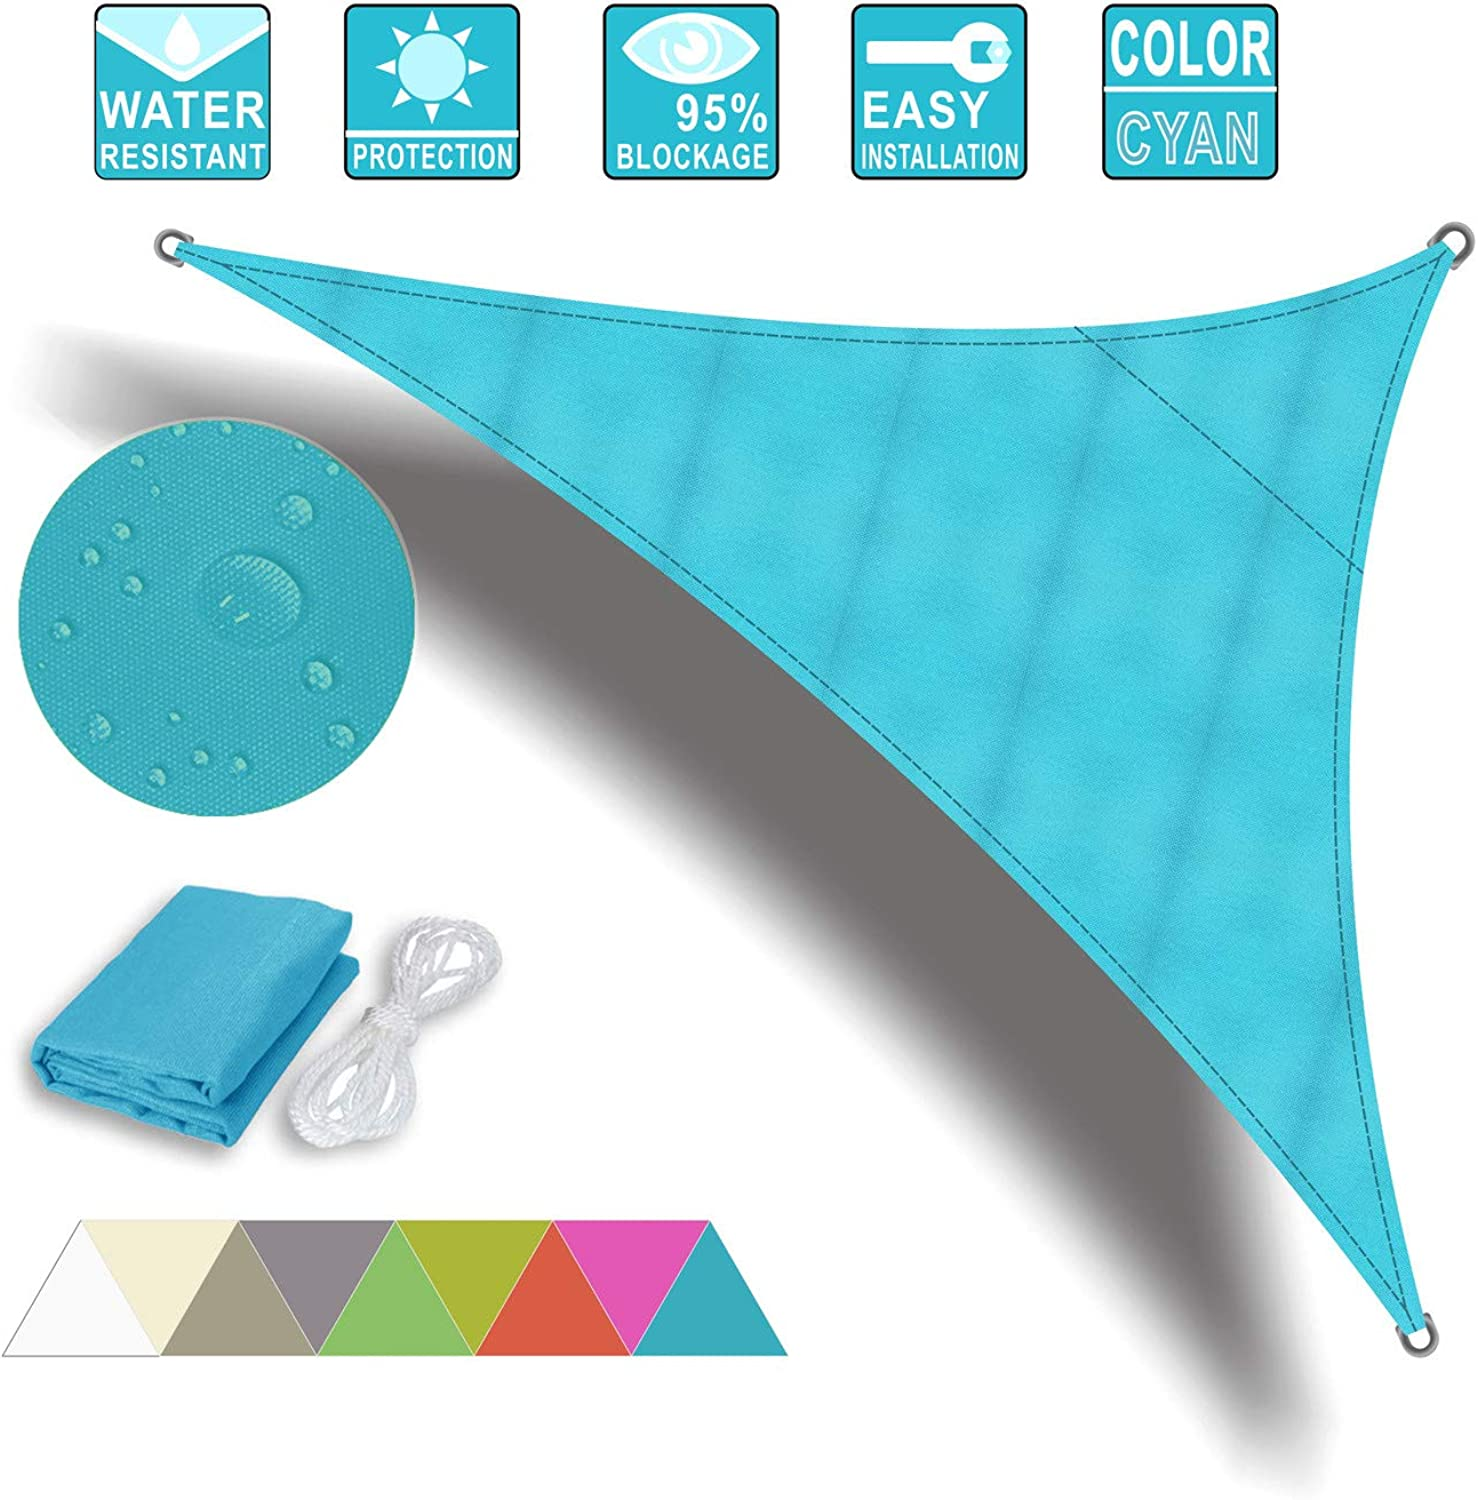 Ommda 95% Sunscreen Anti UV Water Resistance Oxford Cloth Triangle Sun Shade Sail Awning Shade for Outdoor Garden Patio Party Cyan 5x5x5m